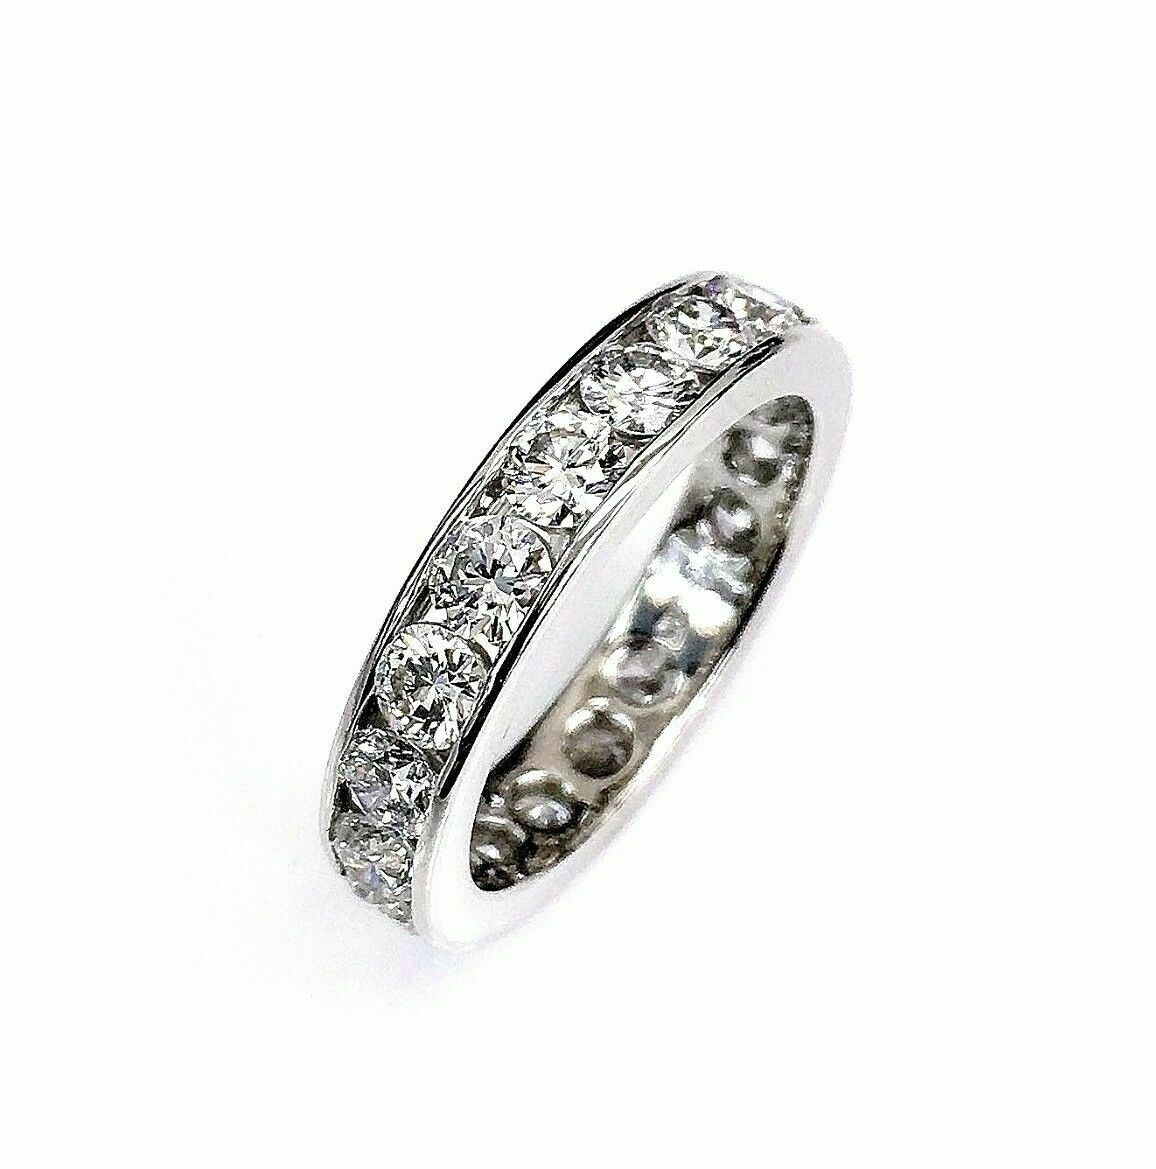 2.51 Carats t.w. Diamond Eternity Ring 950 Platinum F VS Diamonds Brand New